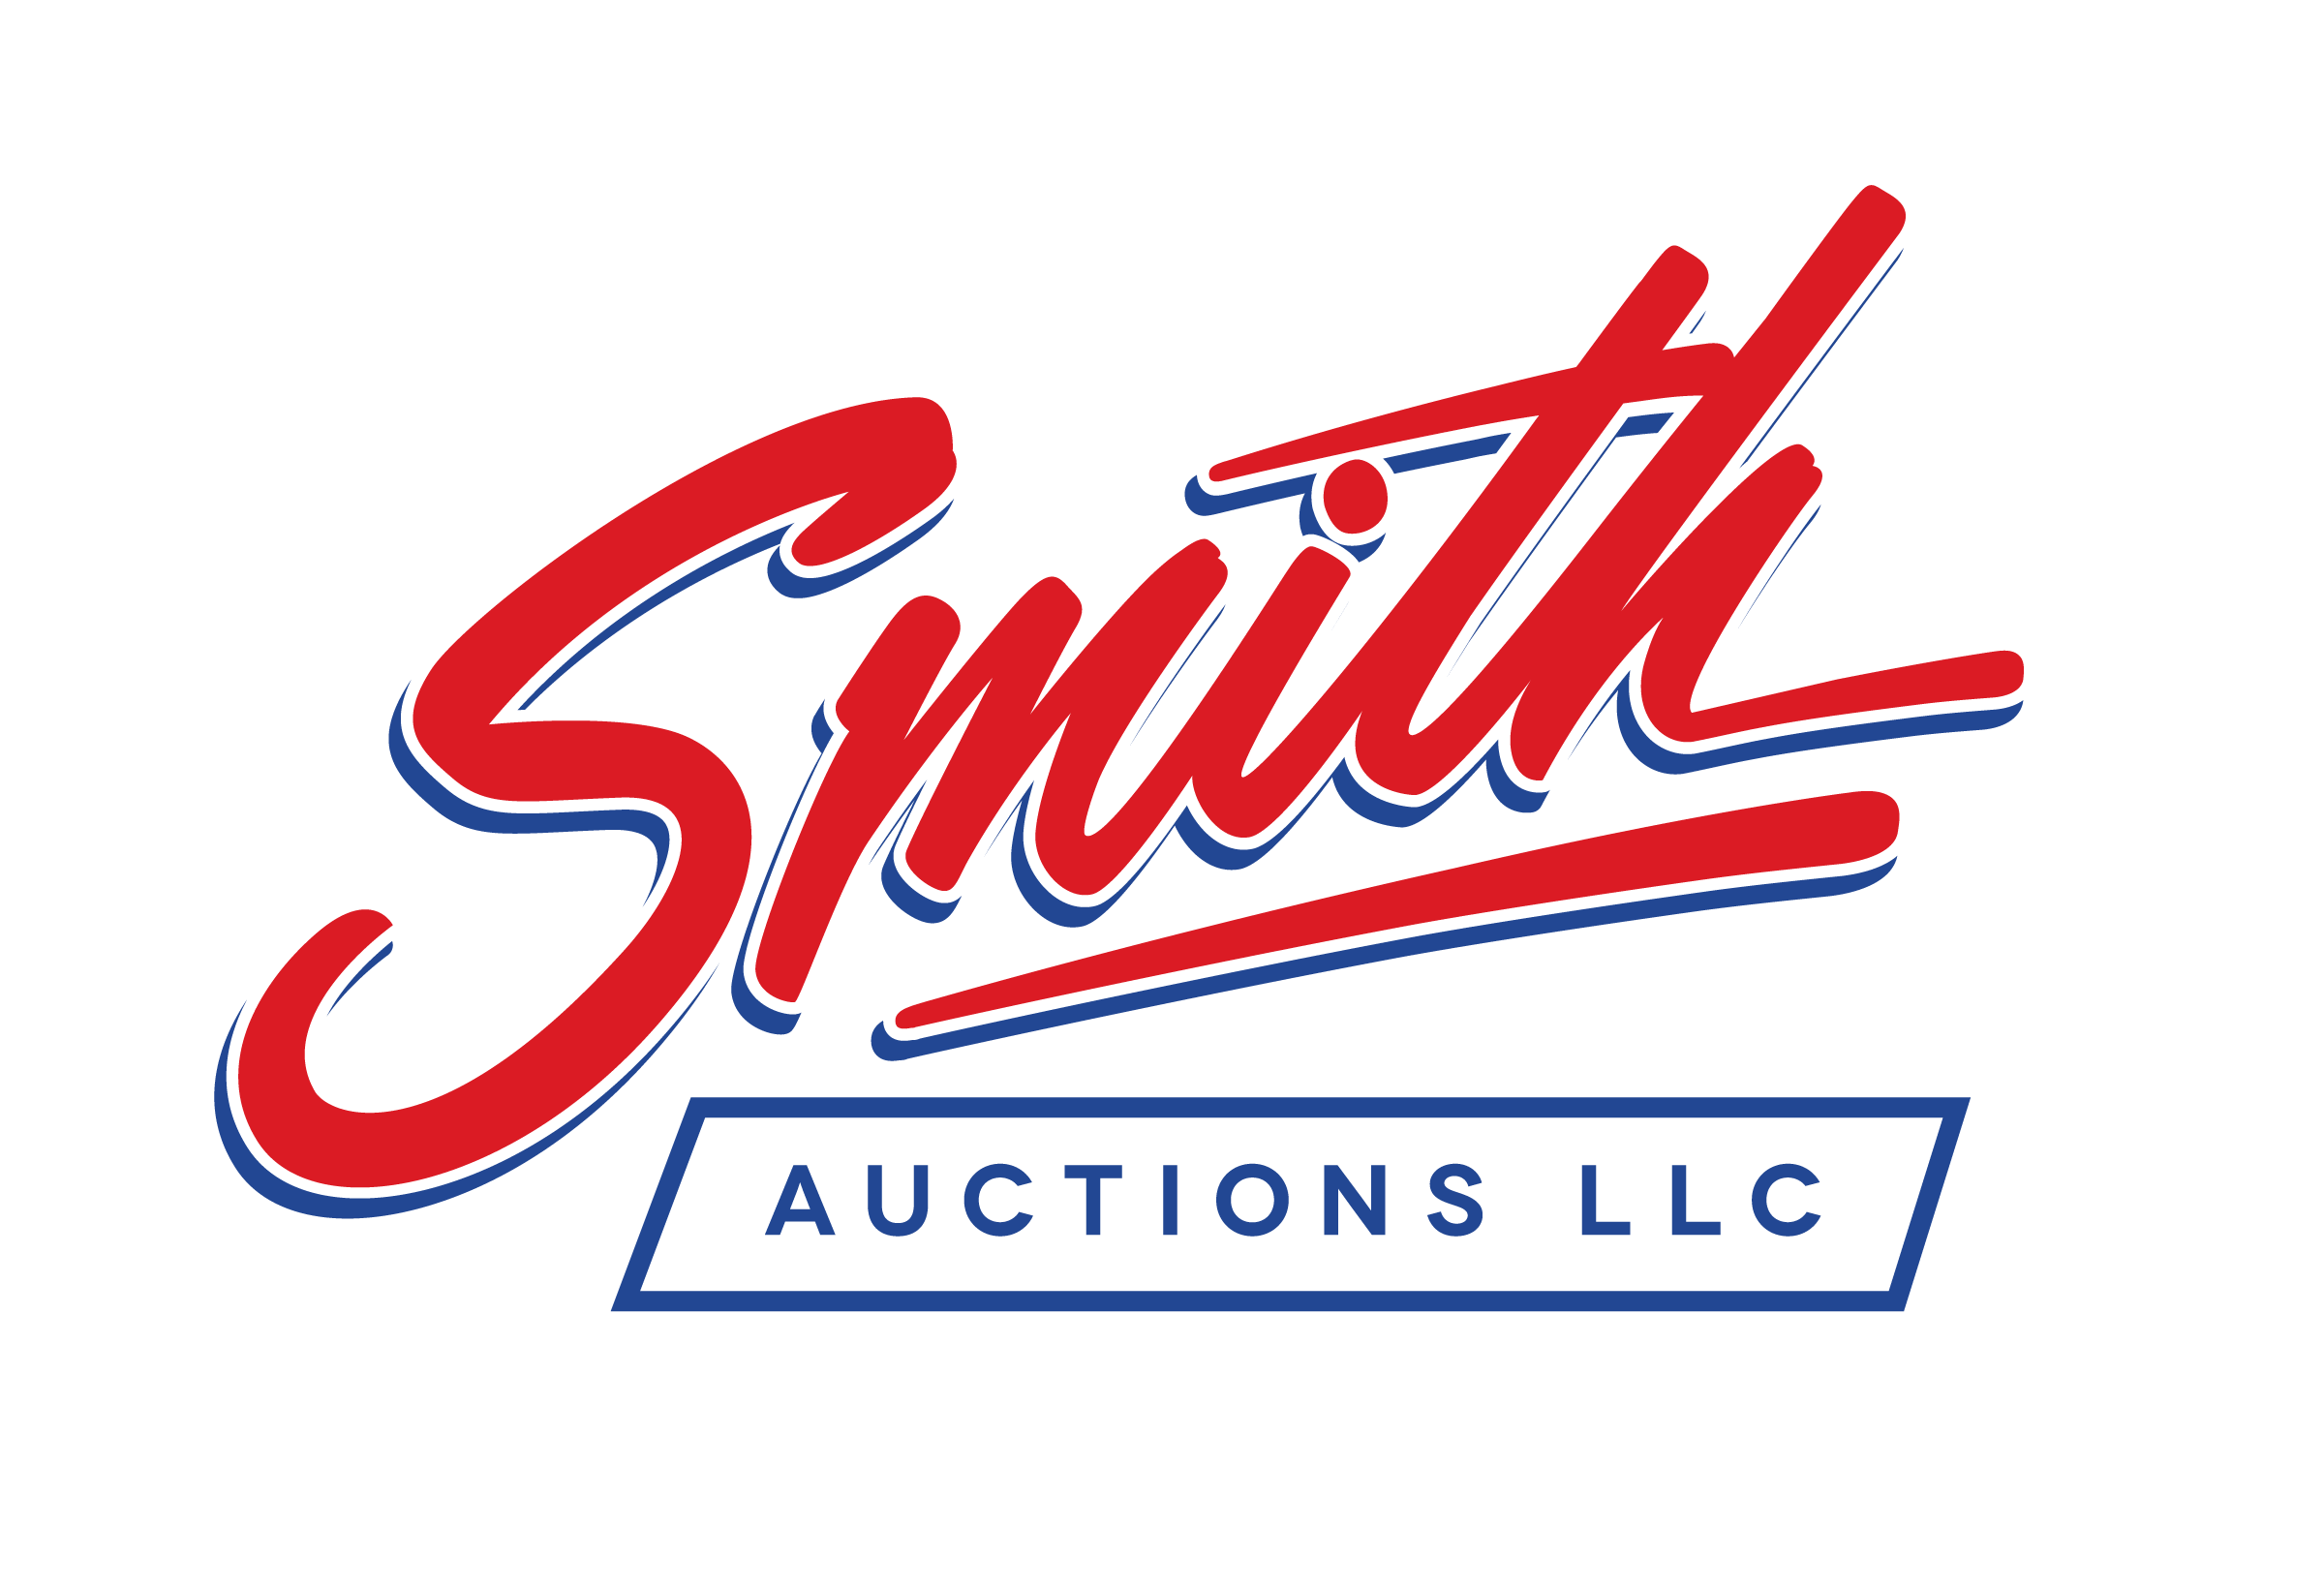 Smith auction LLC logo